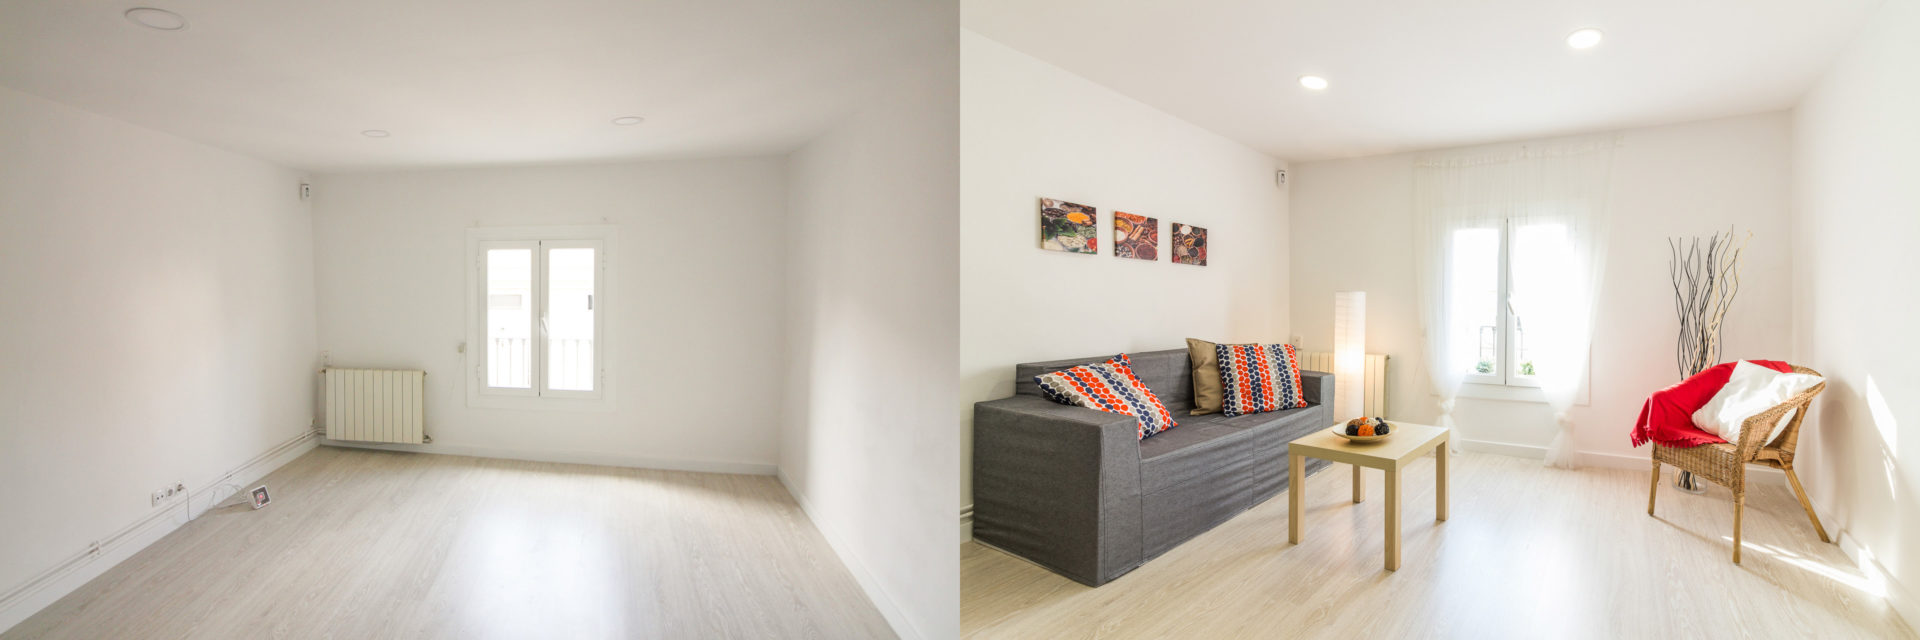 home staging raval salon carton foto antes despues